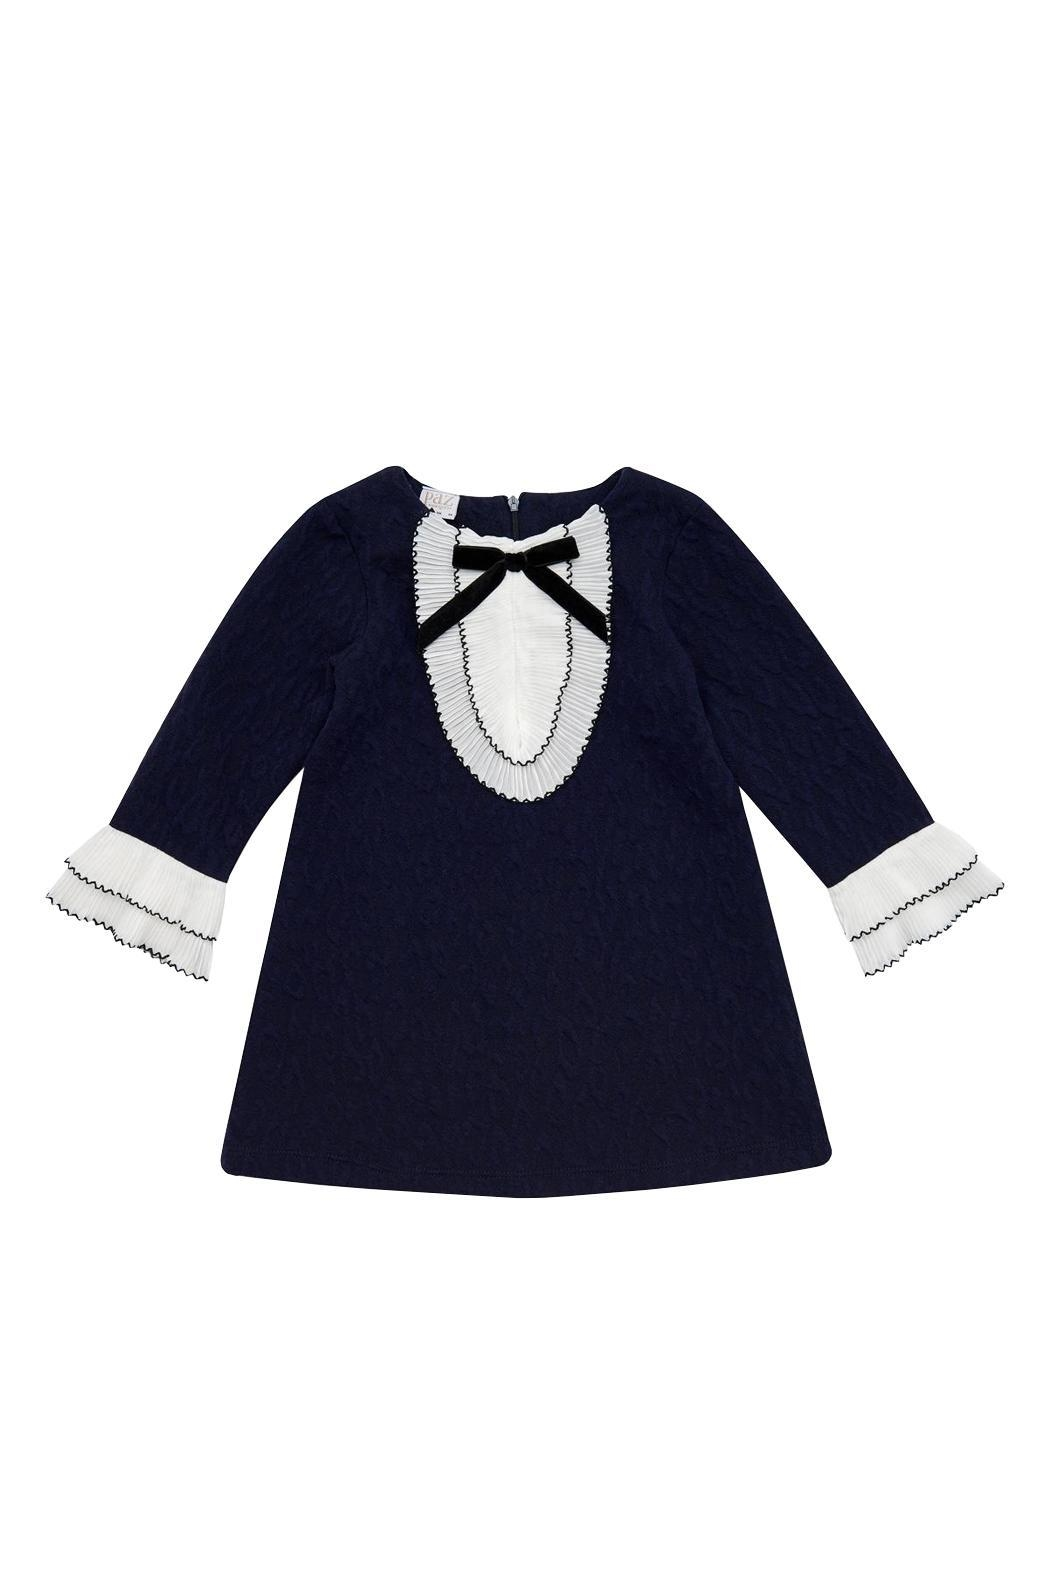 Paz Rodriguez Navy Frill Dress. - Main Image